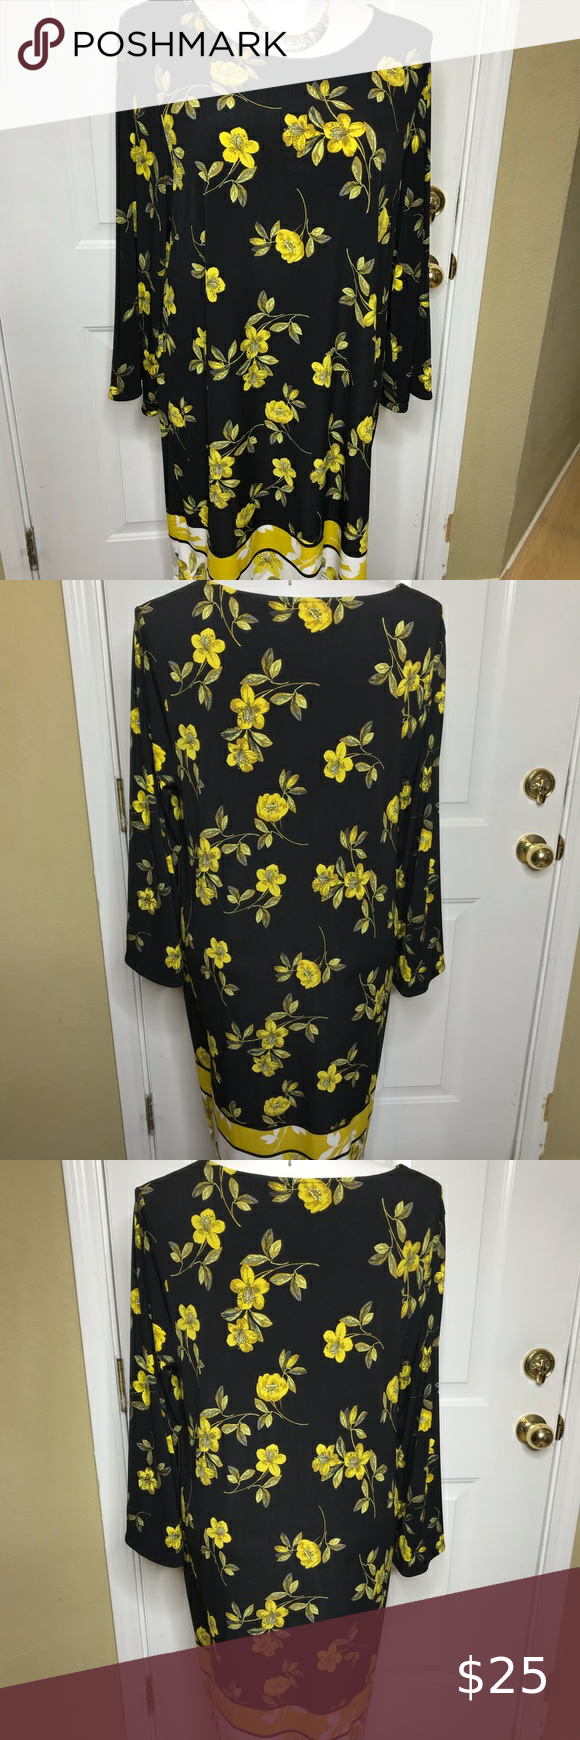 Long Sleeves Black Dress With Yellow Flowers Black Long Sleeve Dress Dresses Black Dress [ 1740 x 580 Pixel ]